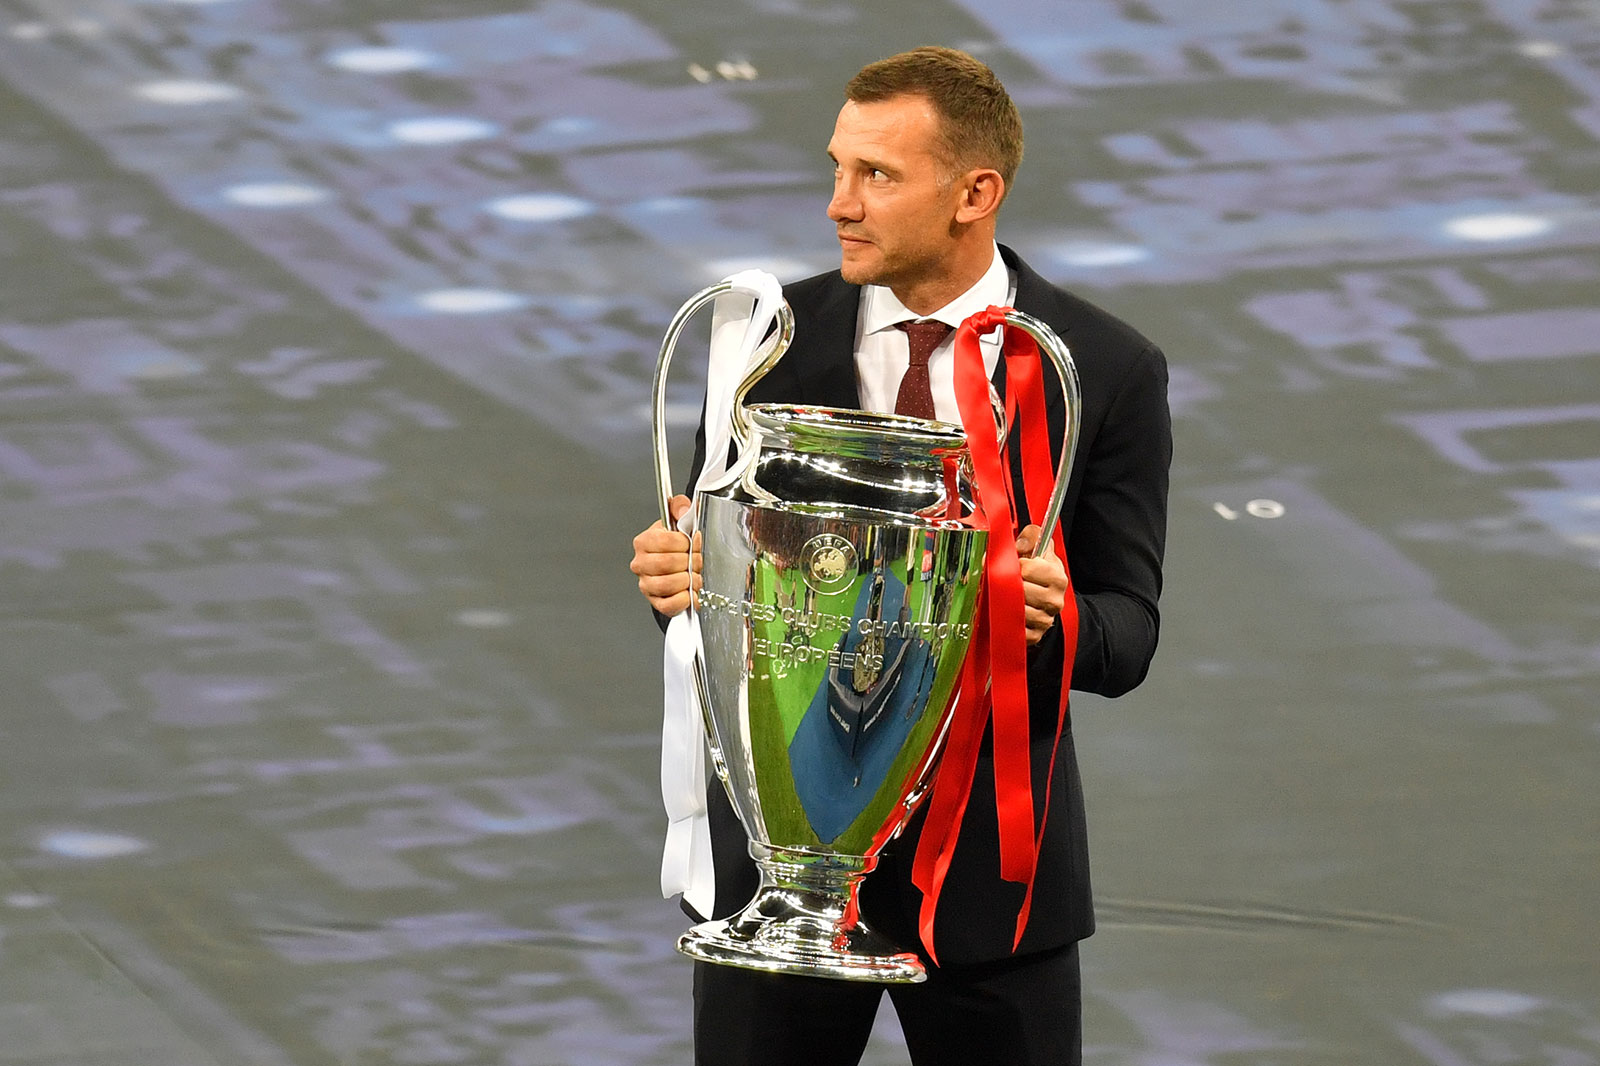 Former Ukrainian football player Andriy Shevchenko carries the trophy prior to the UEFA Champions League final football match between Liverpool and Real Madrid at the Olympic Stadium in Kiev, Ukraine on May 26, 2018. (Photo by Sergei SUPINSKY / AFP) (Photo credit should read SERGEI SUPINSKY/AFP/Getty Images)